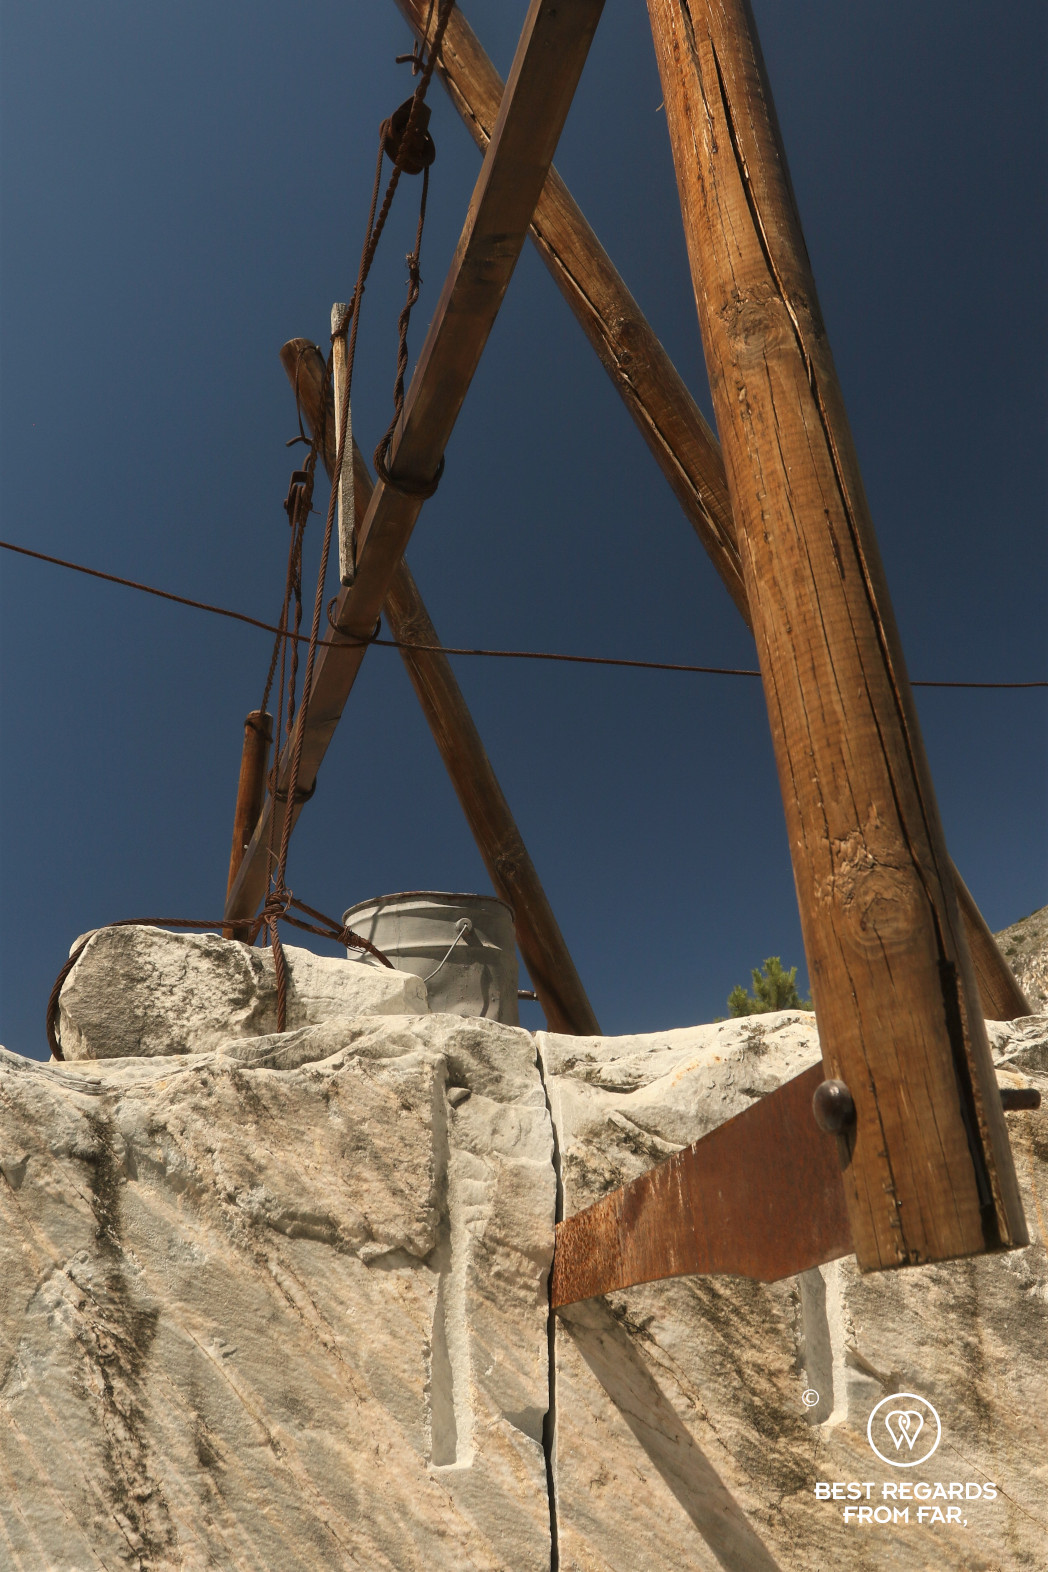 Old saw of the Carrara marble quarries, Italy